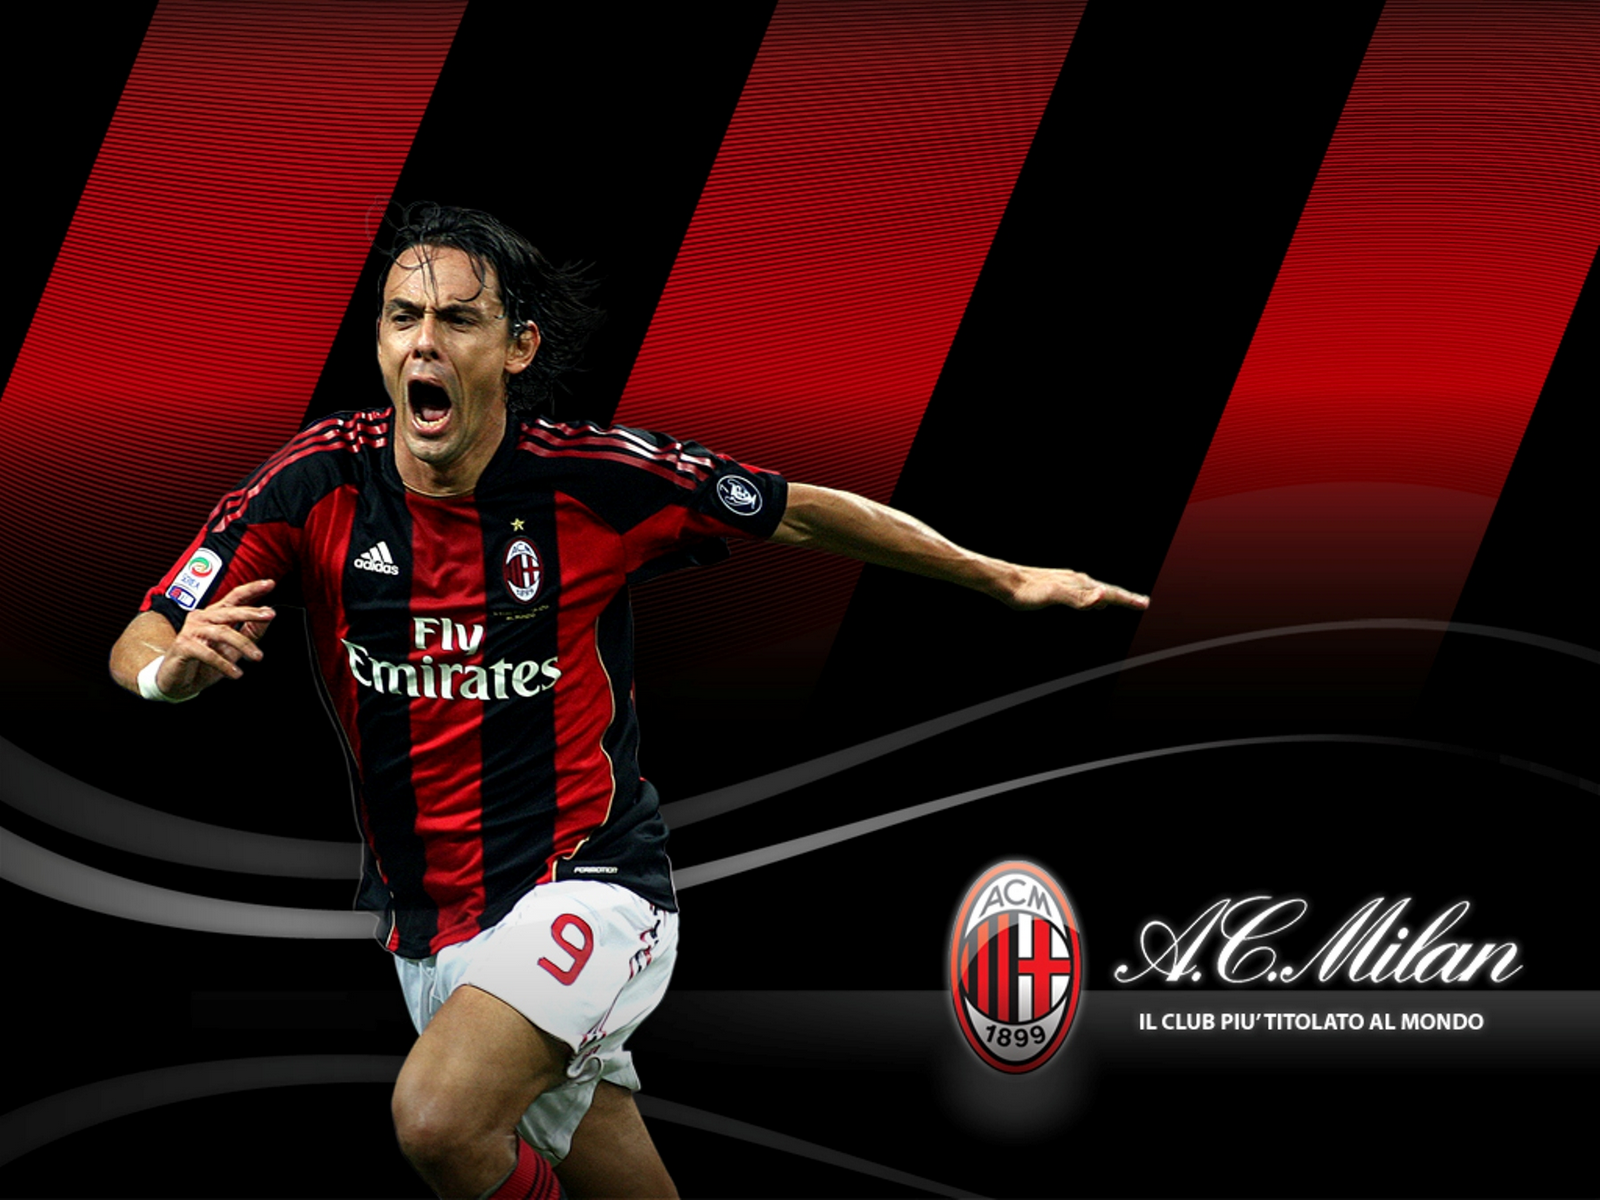 1600x1200 Milan Widescreen Image | Awesome Photos, v.98